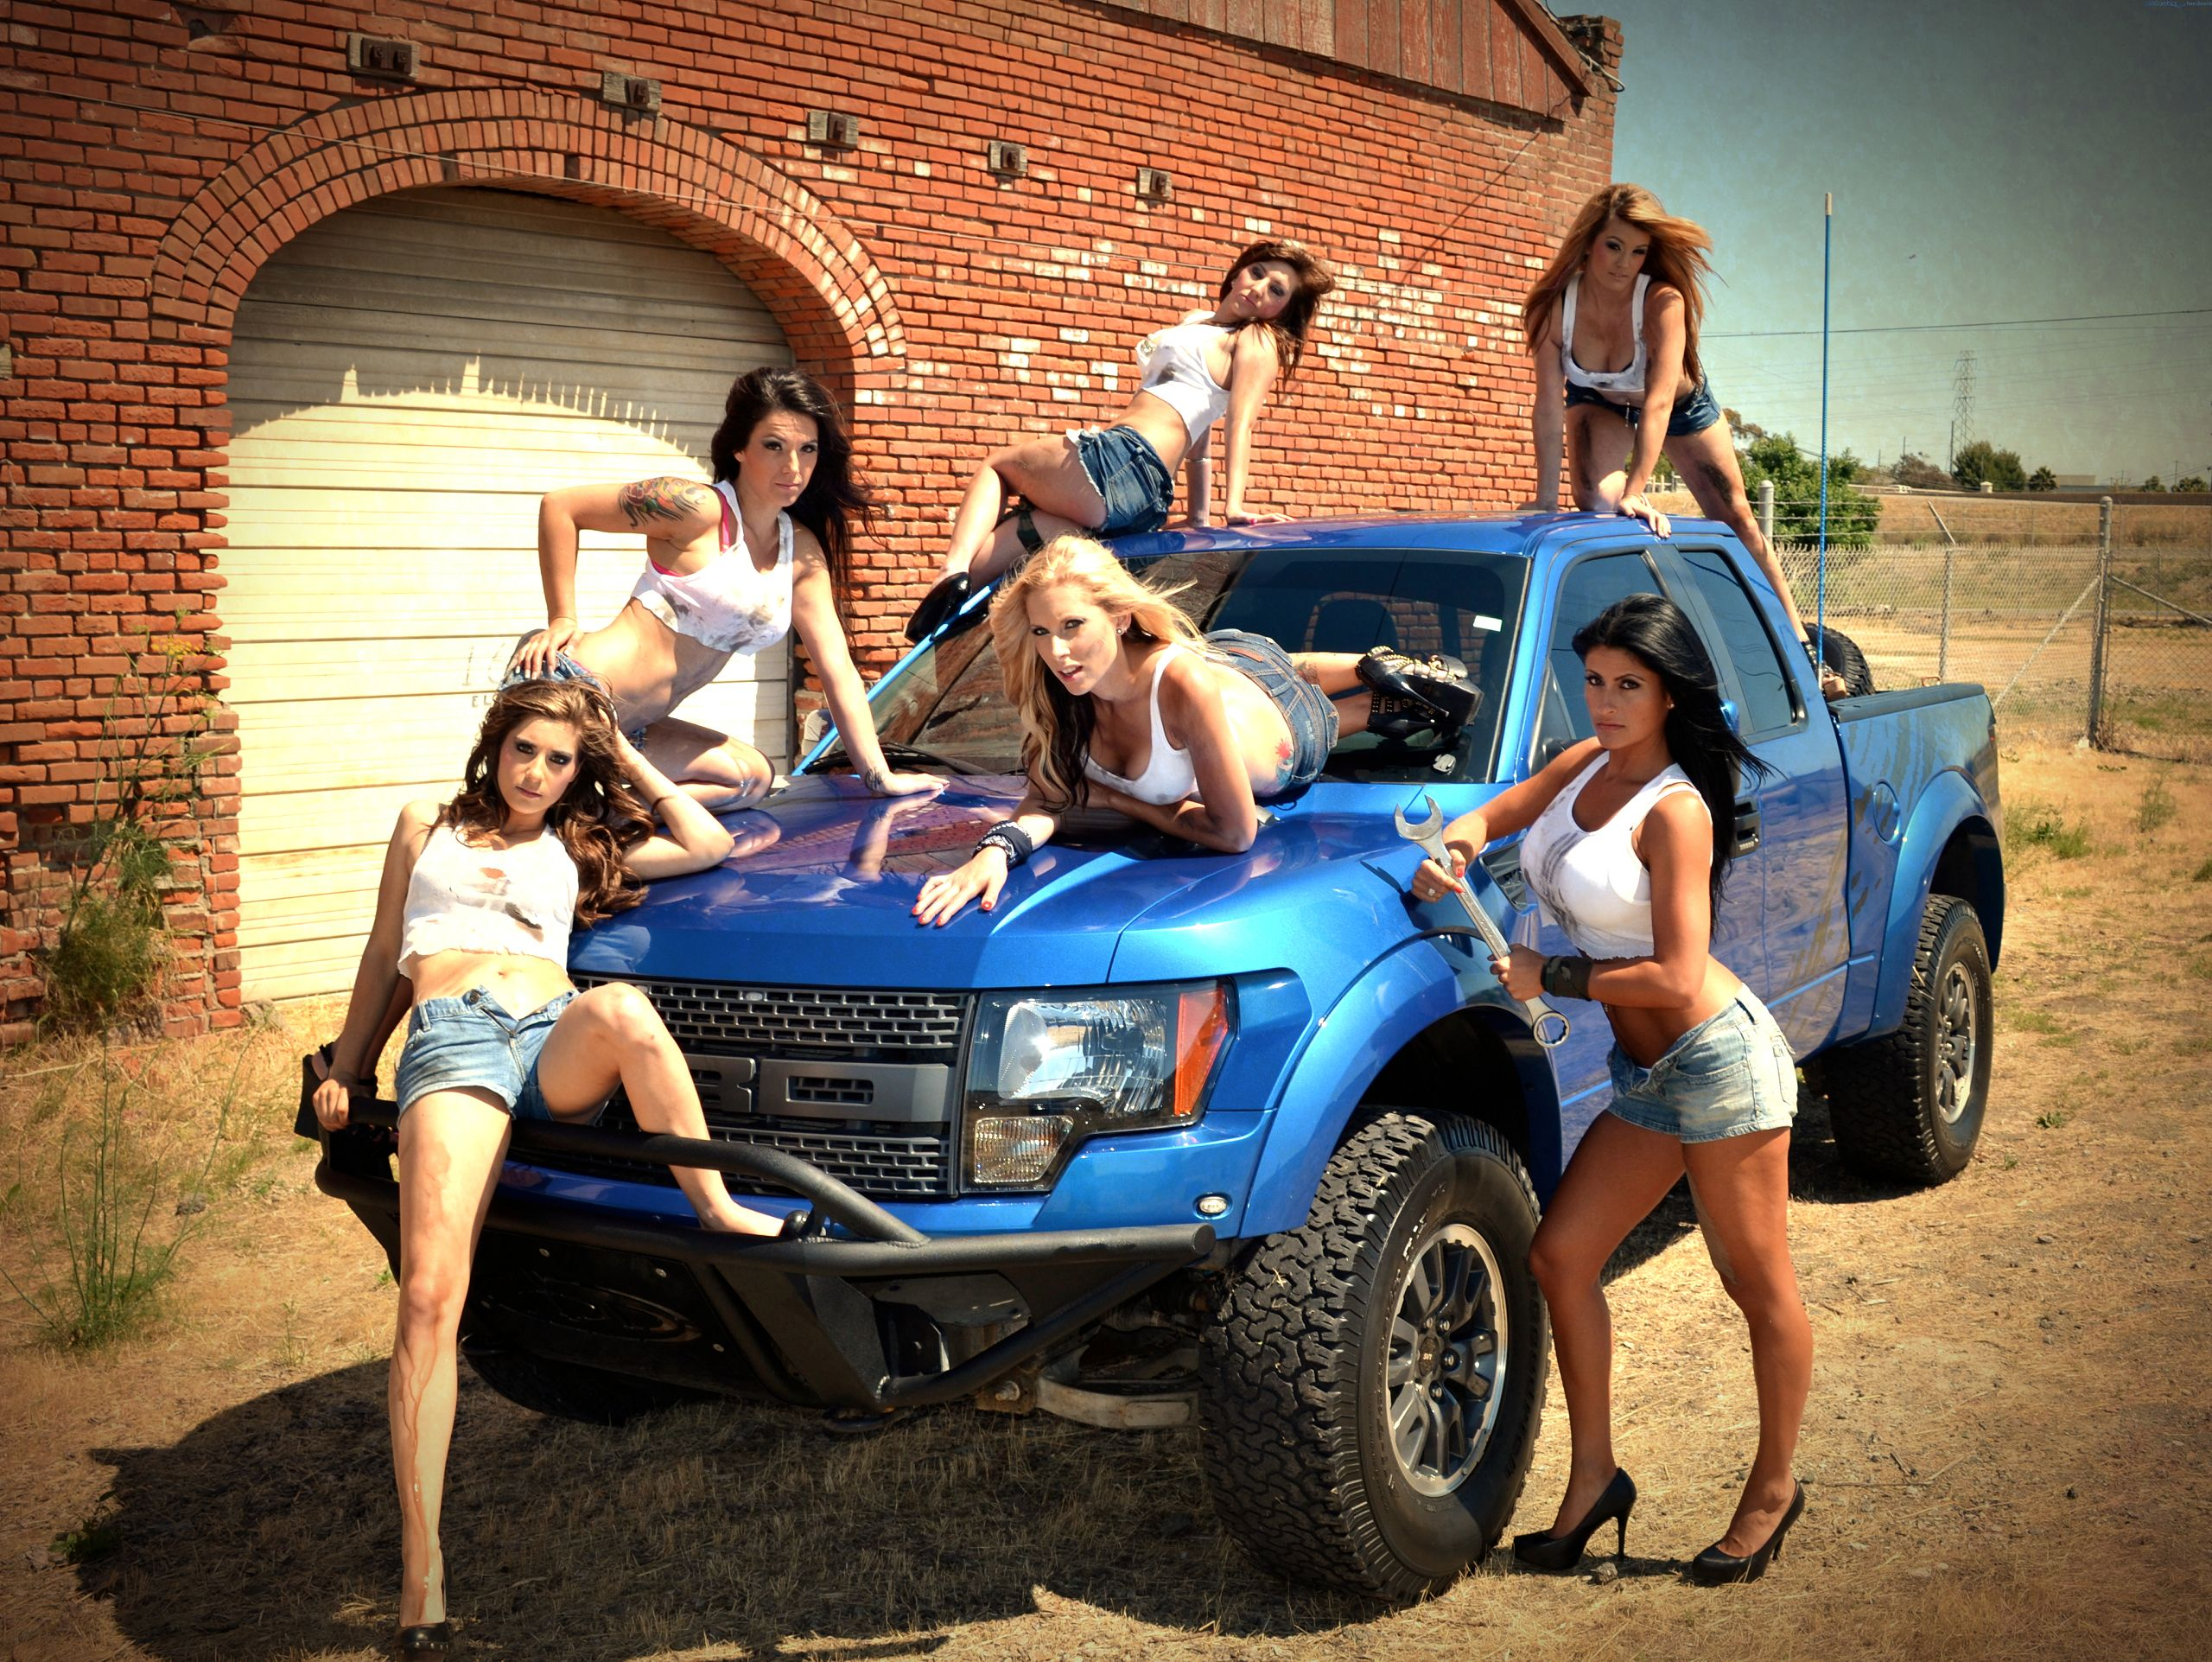 Ford hot photo - 1